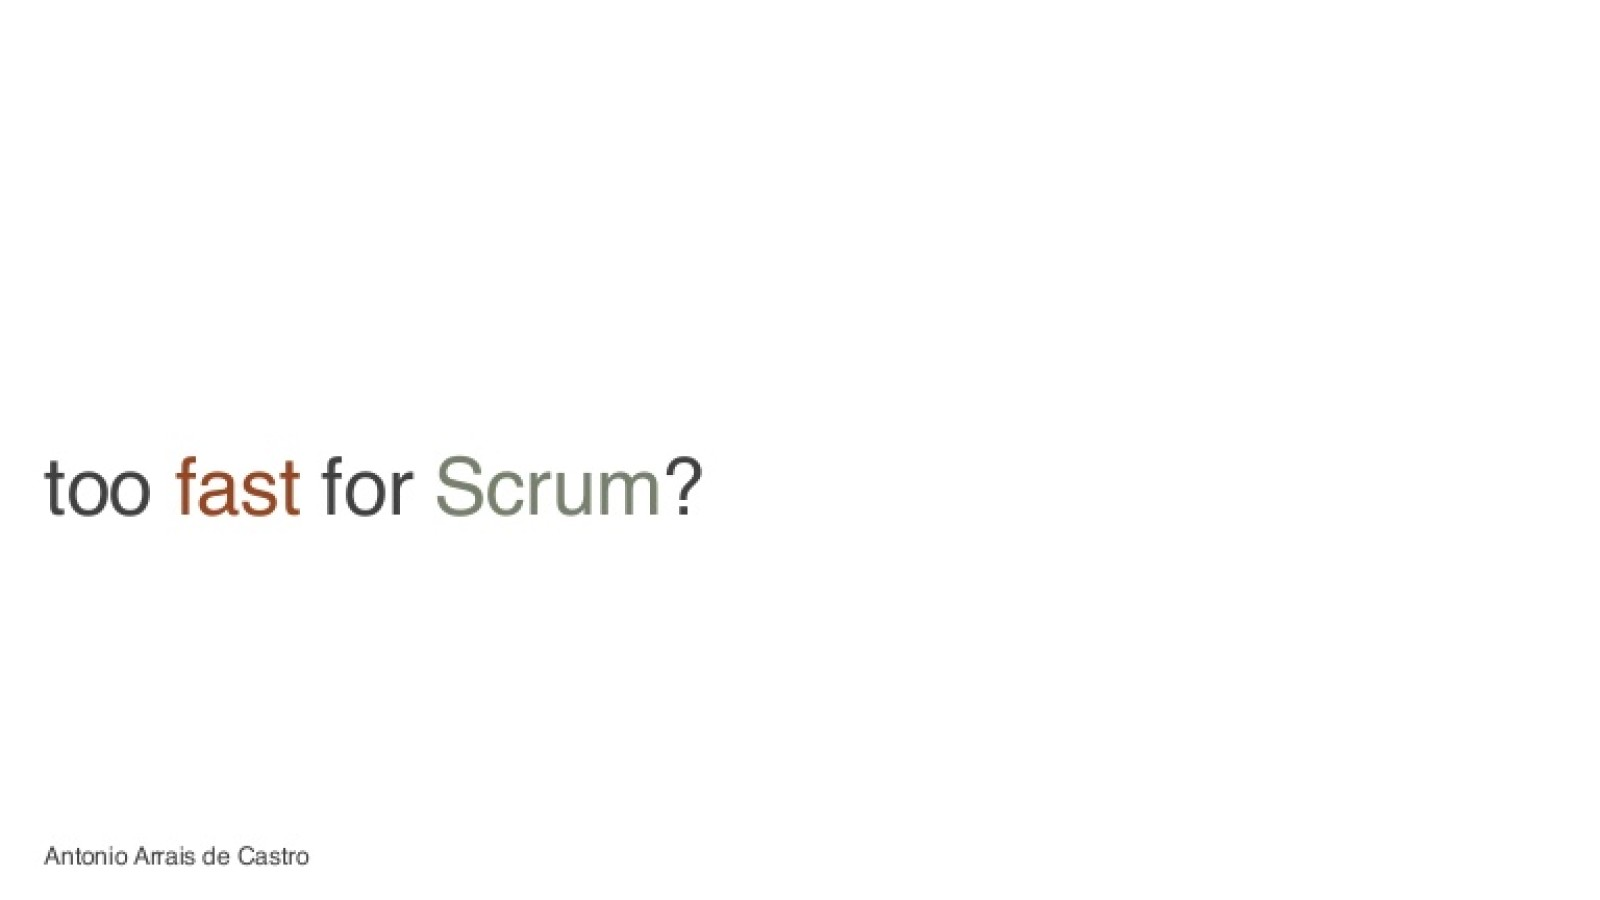 Too Fast for Scrum